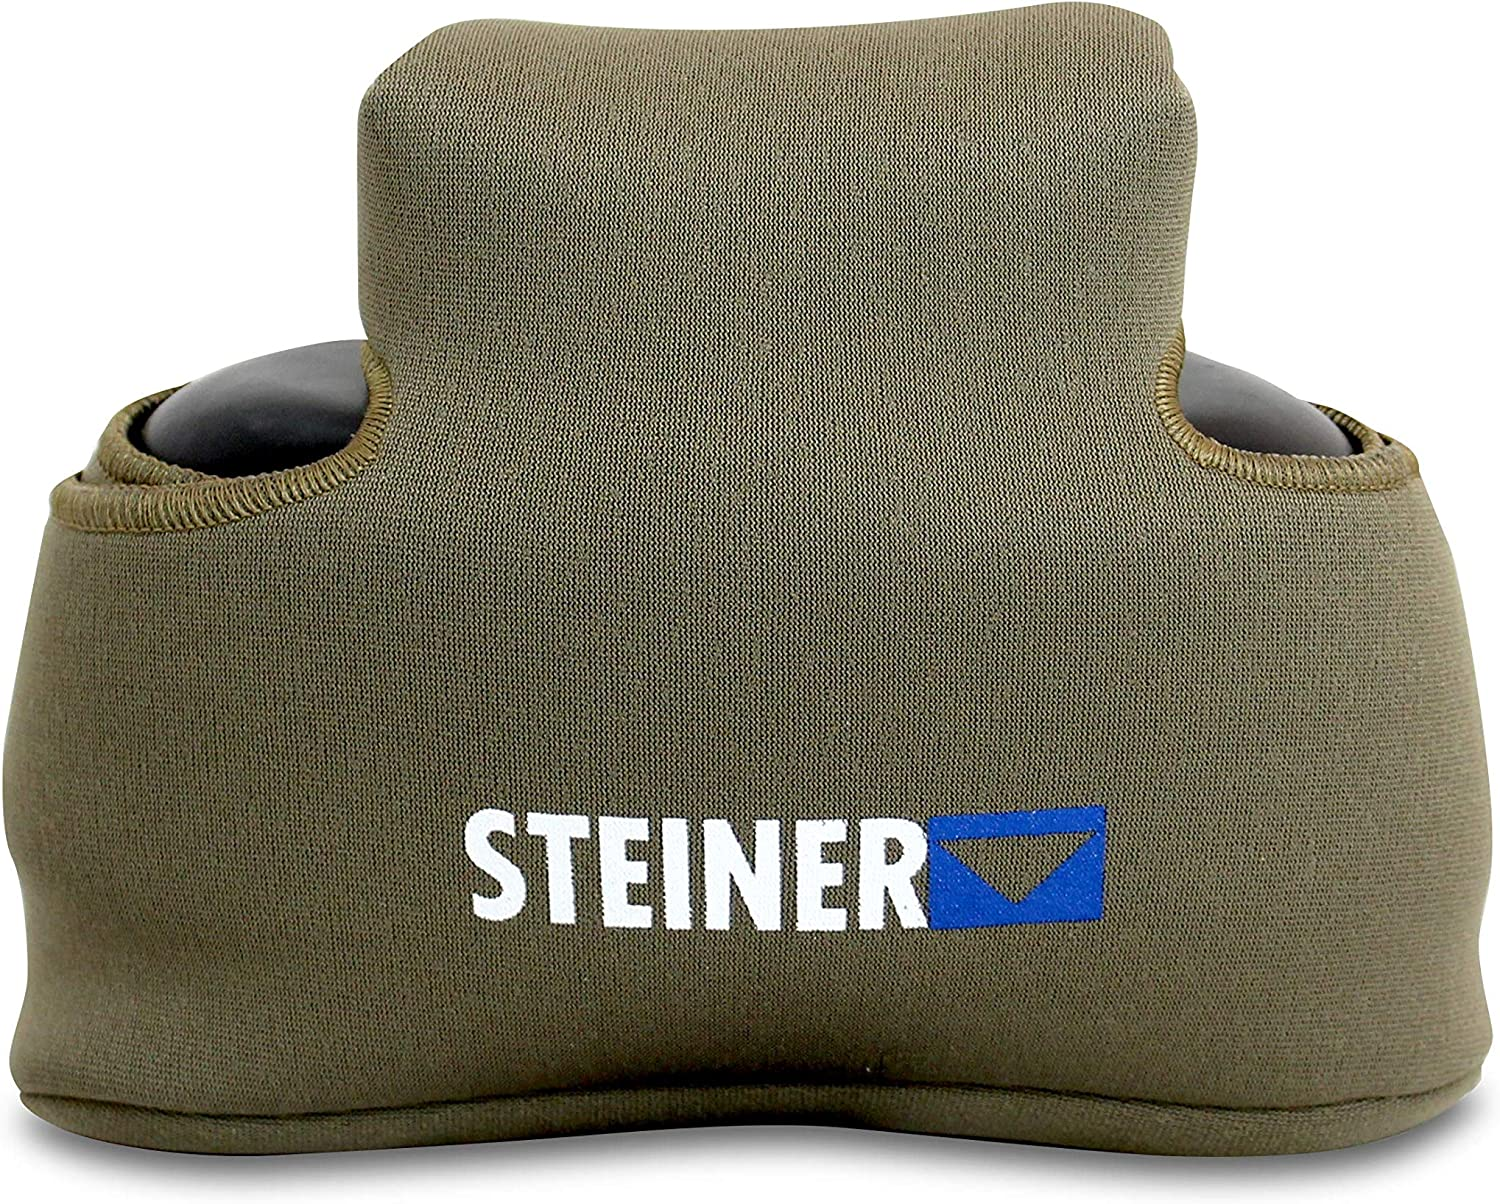 Steiner Bino Bib Protective Cover Max 84% OFF Binoculars for Manufacturer OFFicial shop